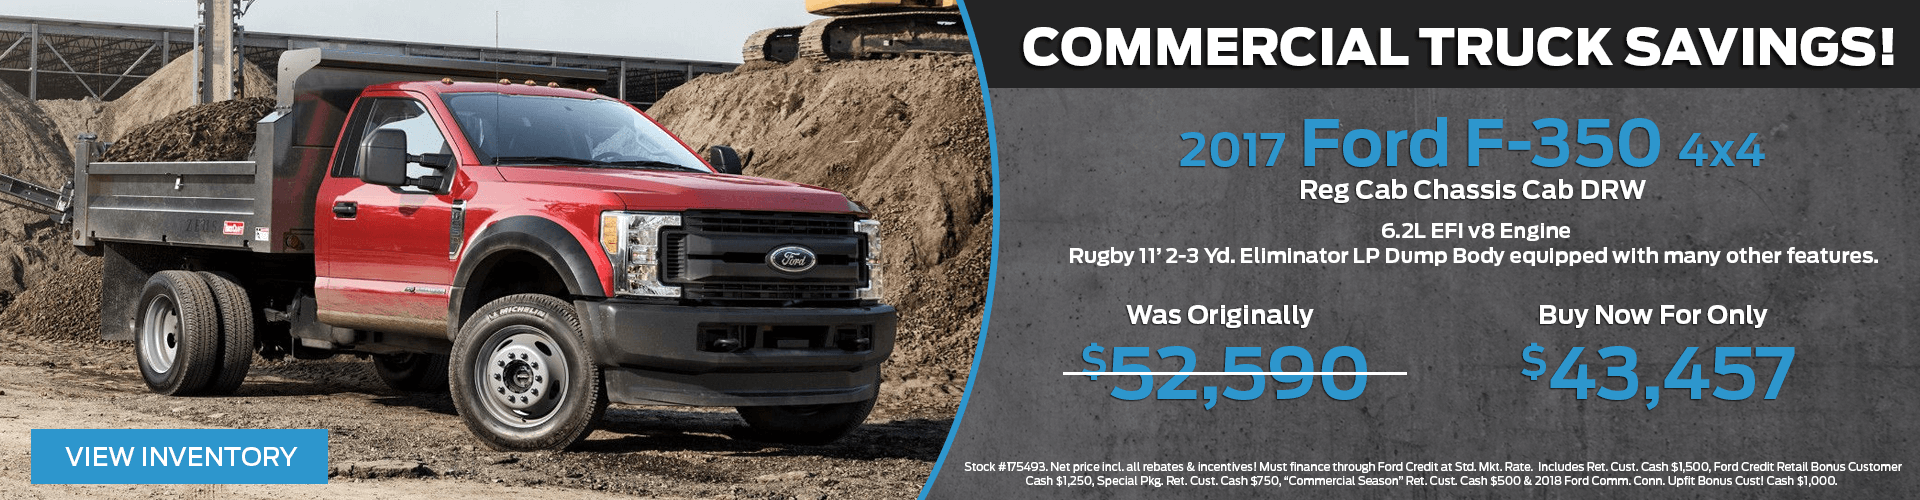 2017 Ford F-350 4x4